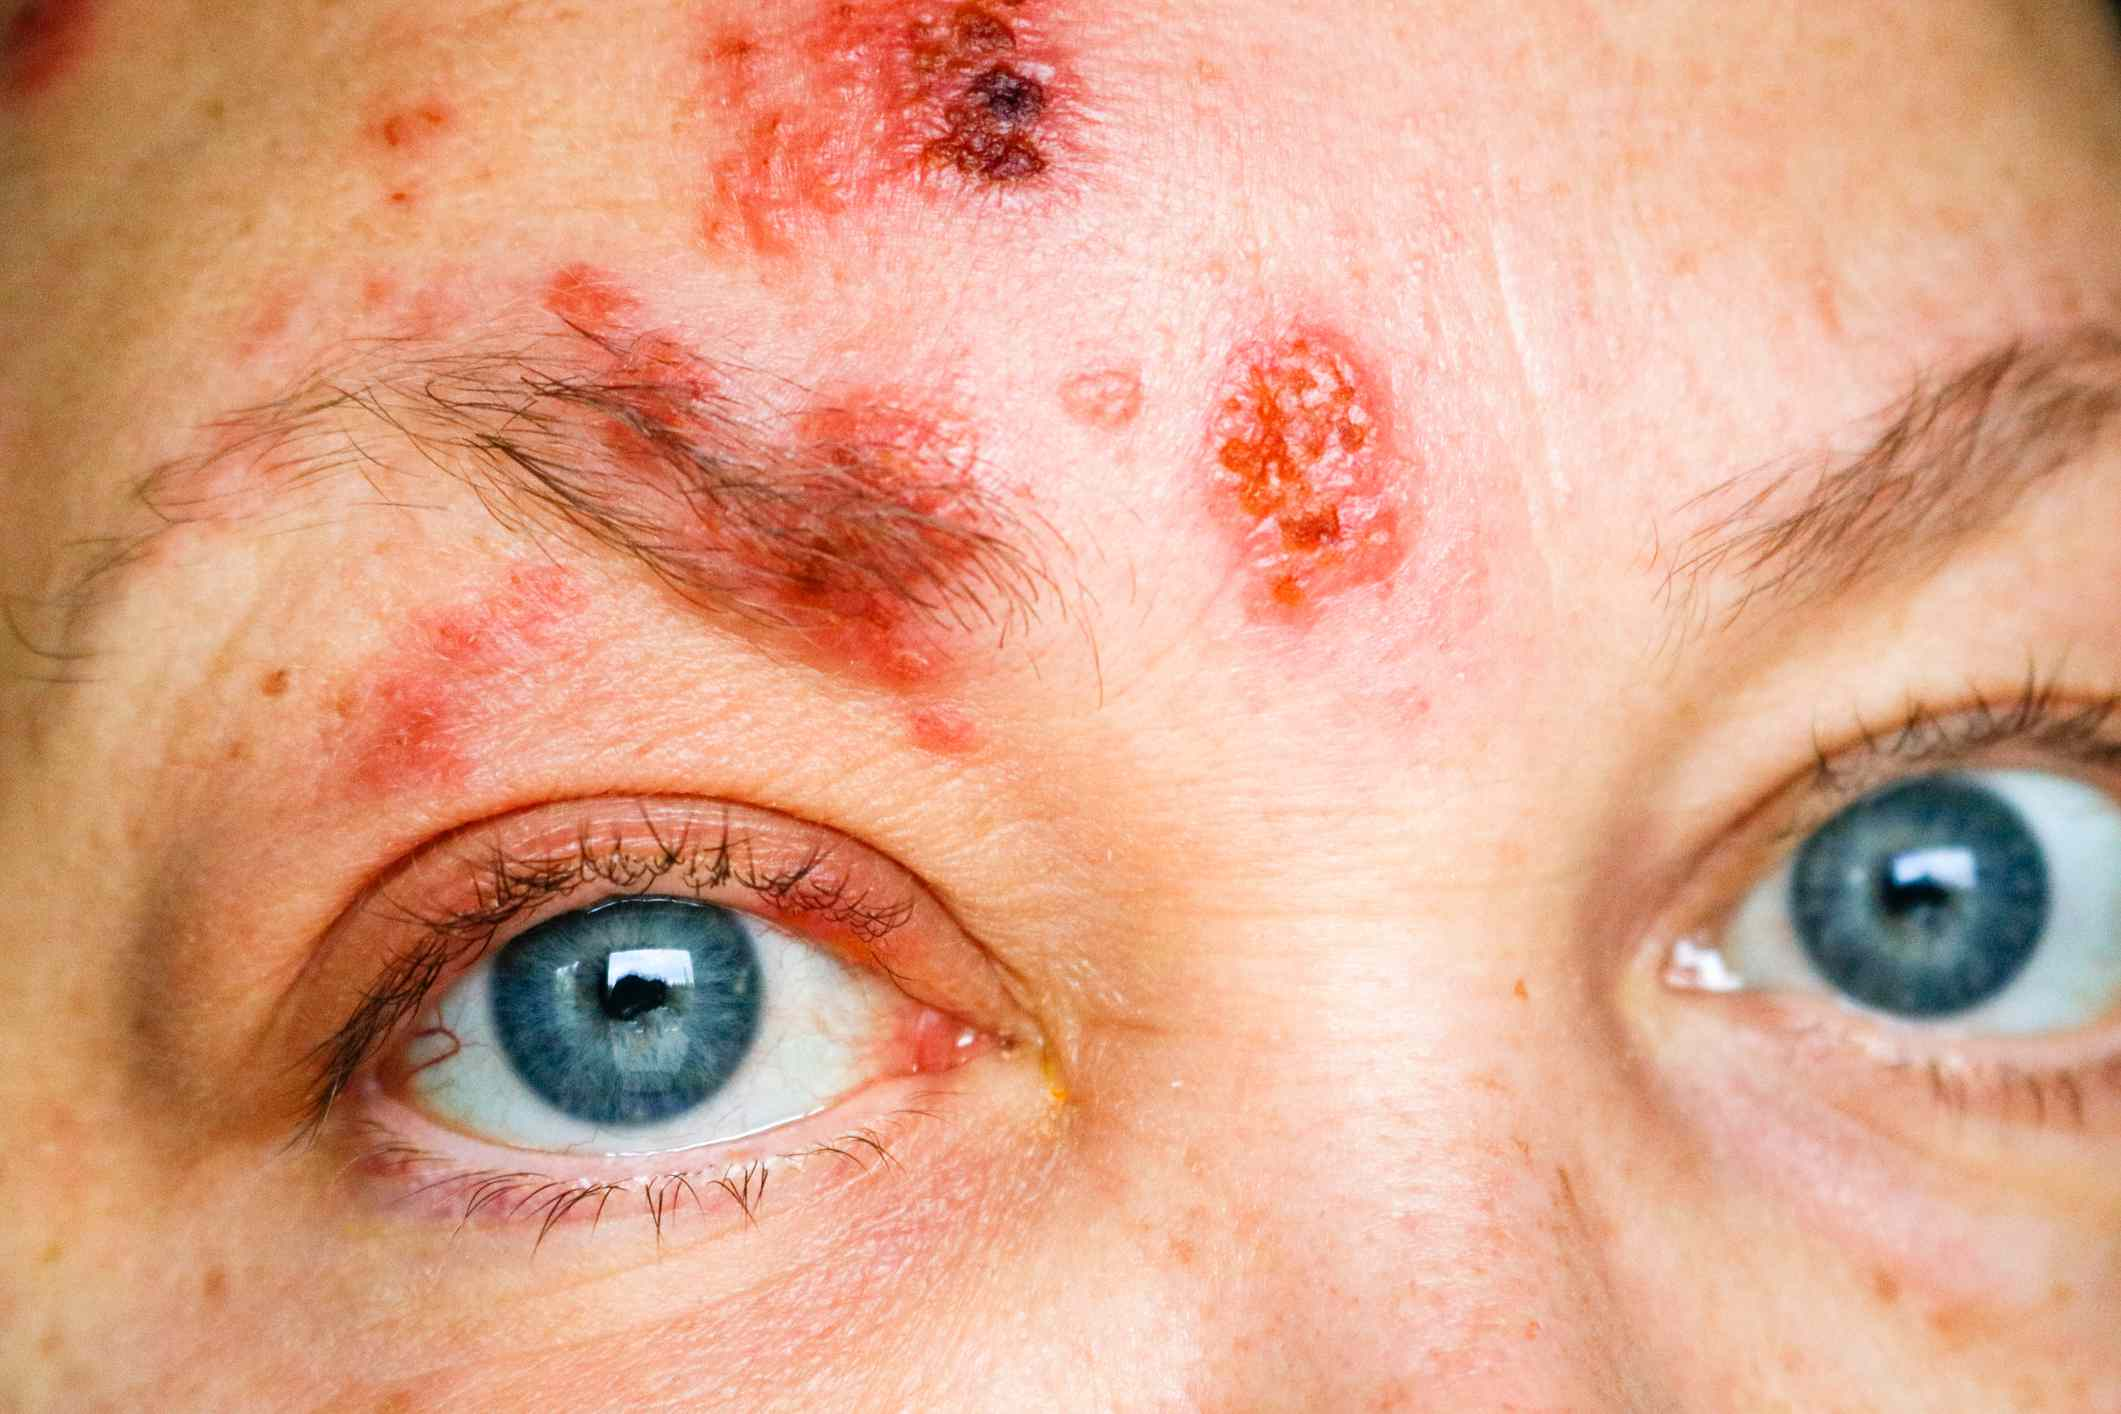 Shingles on face and around eye